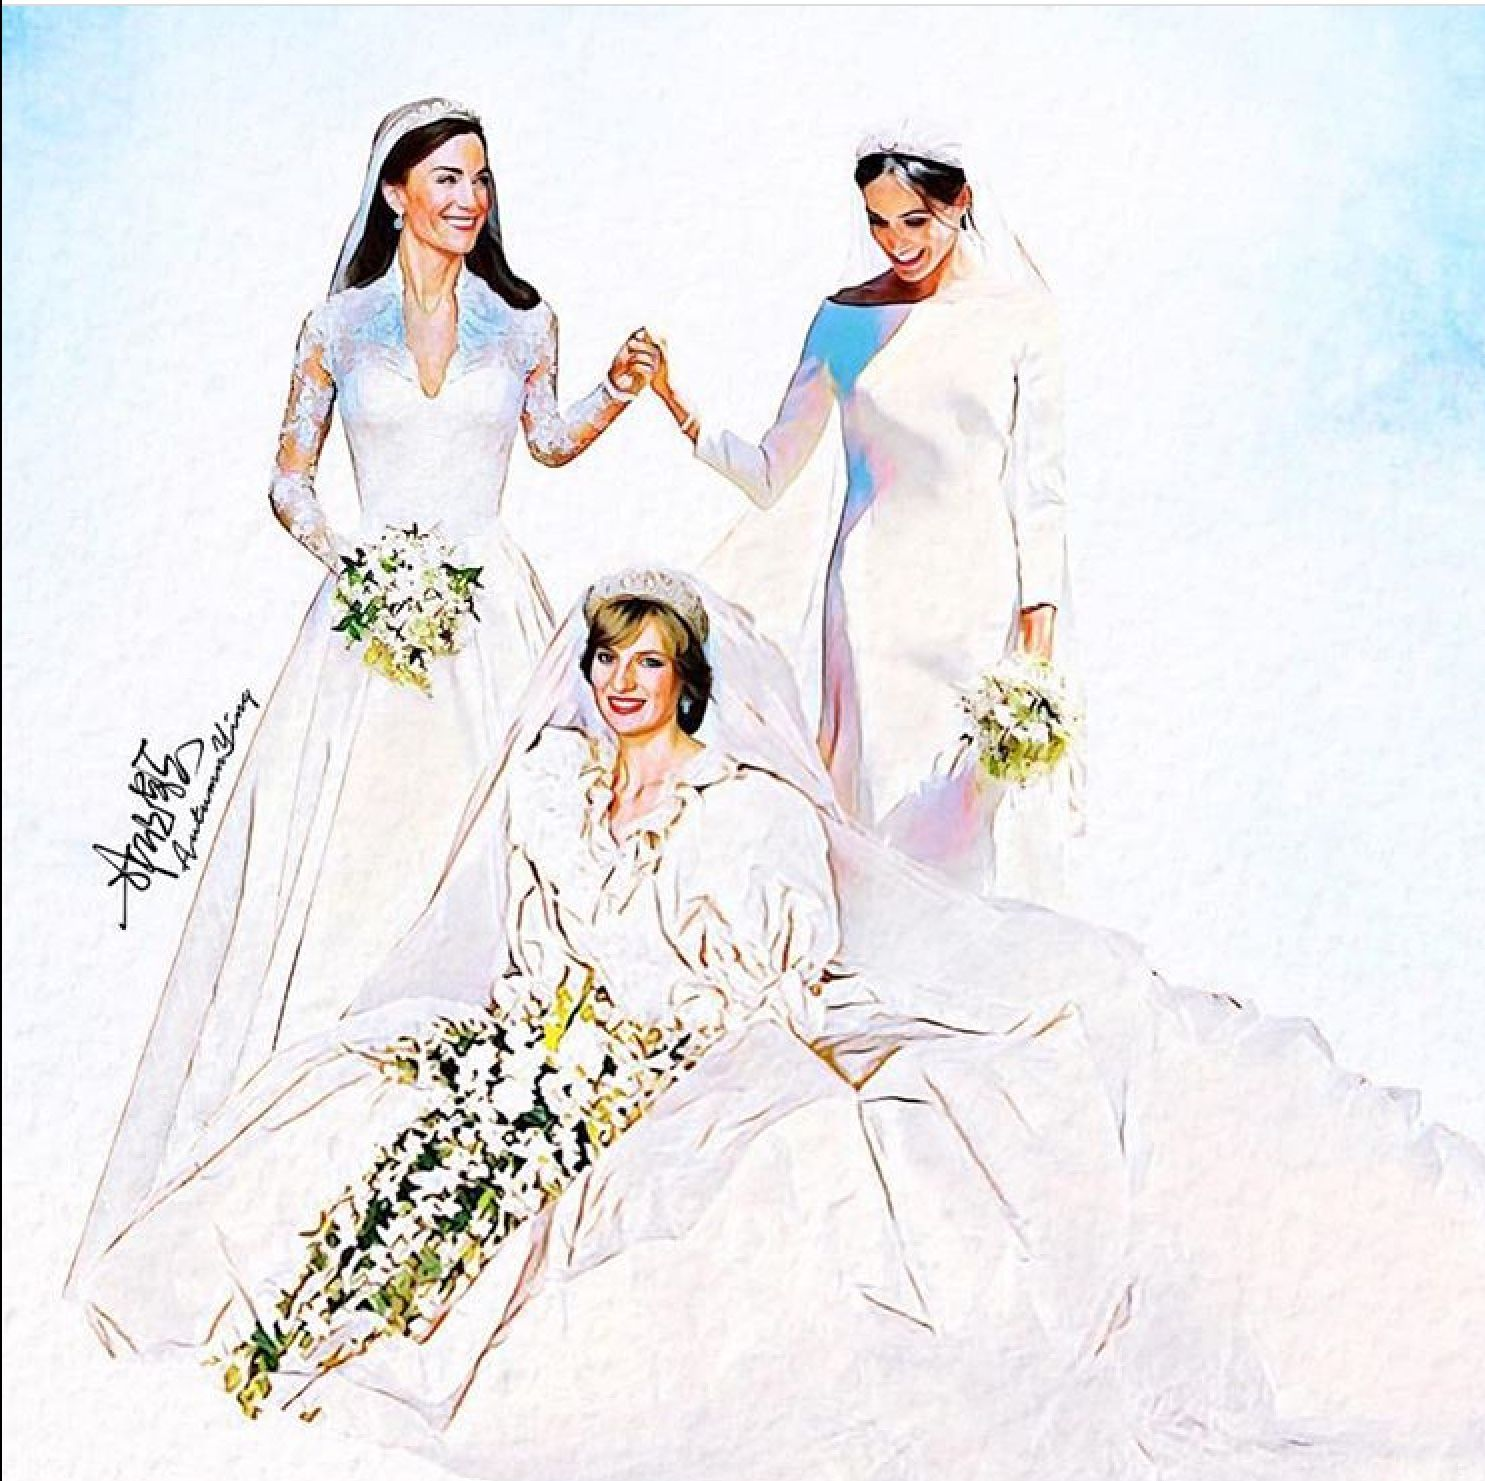 generations the duke and duchess of sussex wedding royal brides princess diana kate and meghan royal brides princess diana kate